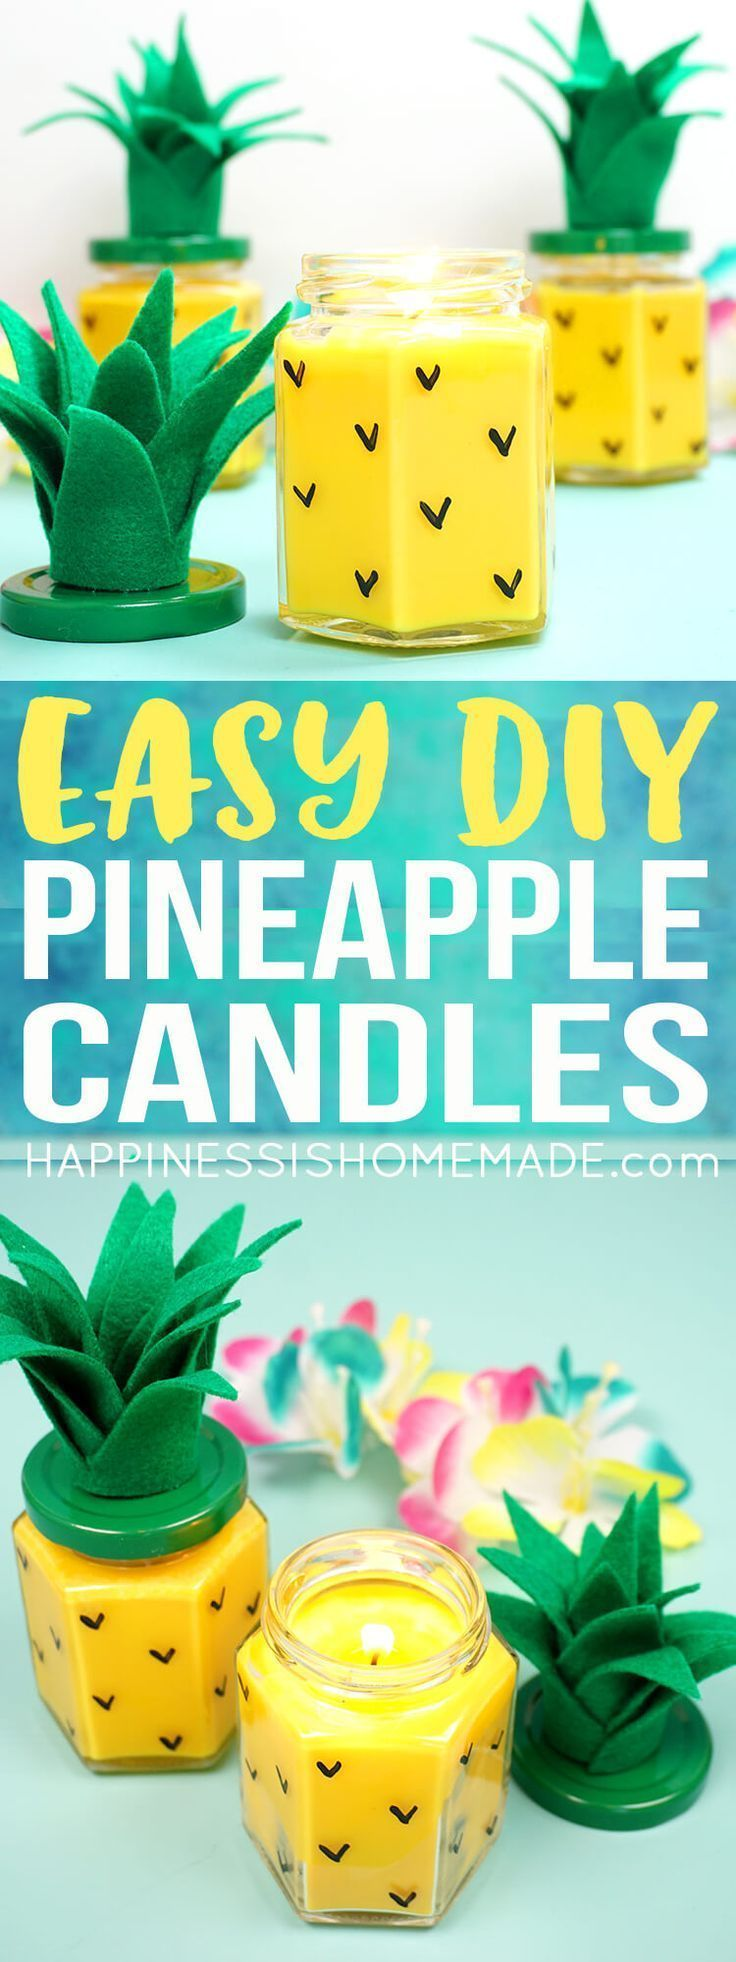 The Best DIY Projects U0026 DIY Ideas And Tutorials: Sewing, Paper Craft, DIY.  Diy Candles Ideas Ever Wondered How To Make Candles? These Easy DIY  Pineapple ...